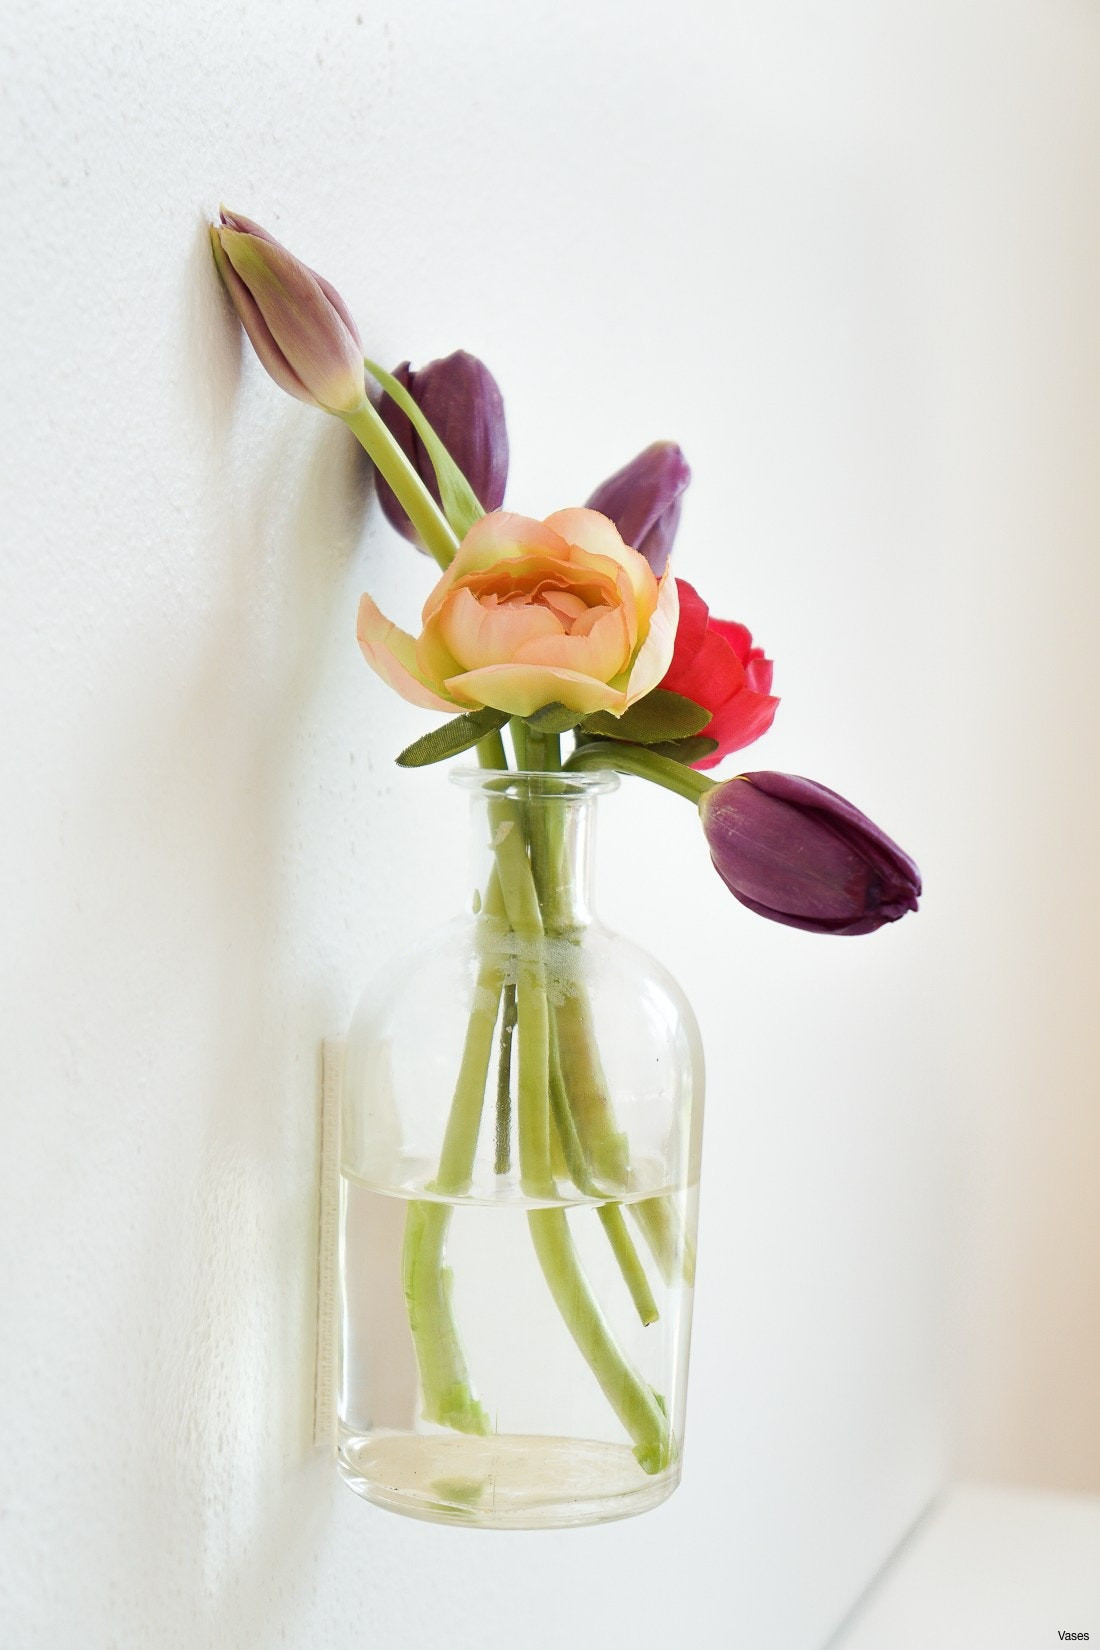 Milk Vases for Centerpieces Of Flower Wall Vase Pics Il Fullxfull L7e9h Vases Wall Flower Vase within Flower Wall Vase Pics Il Fullxfull L7e9h Vases Wall Flower Vase Zoomi 0d Decor Inspiration